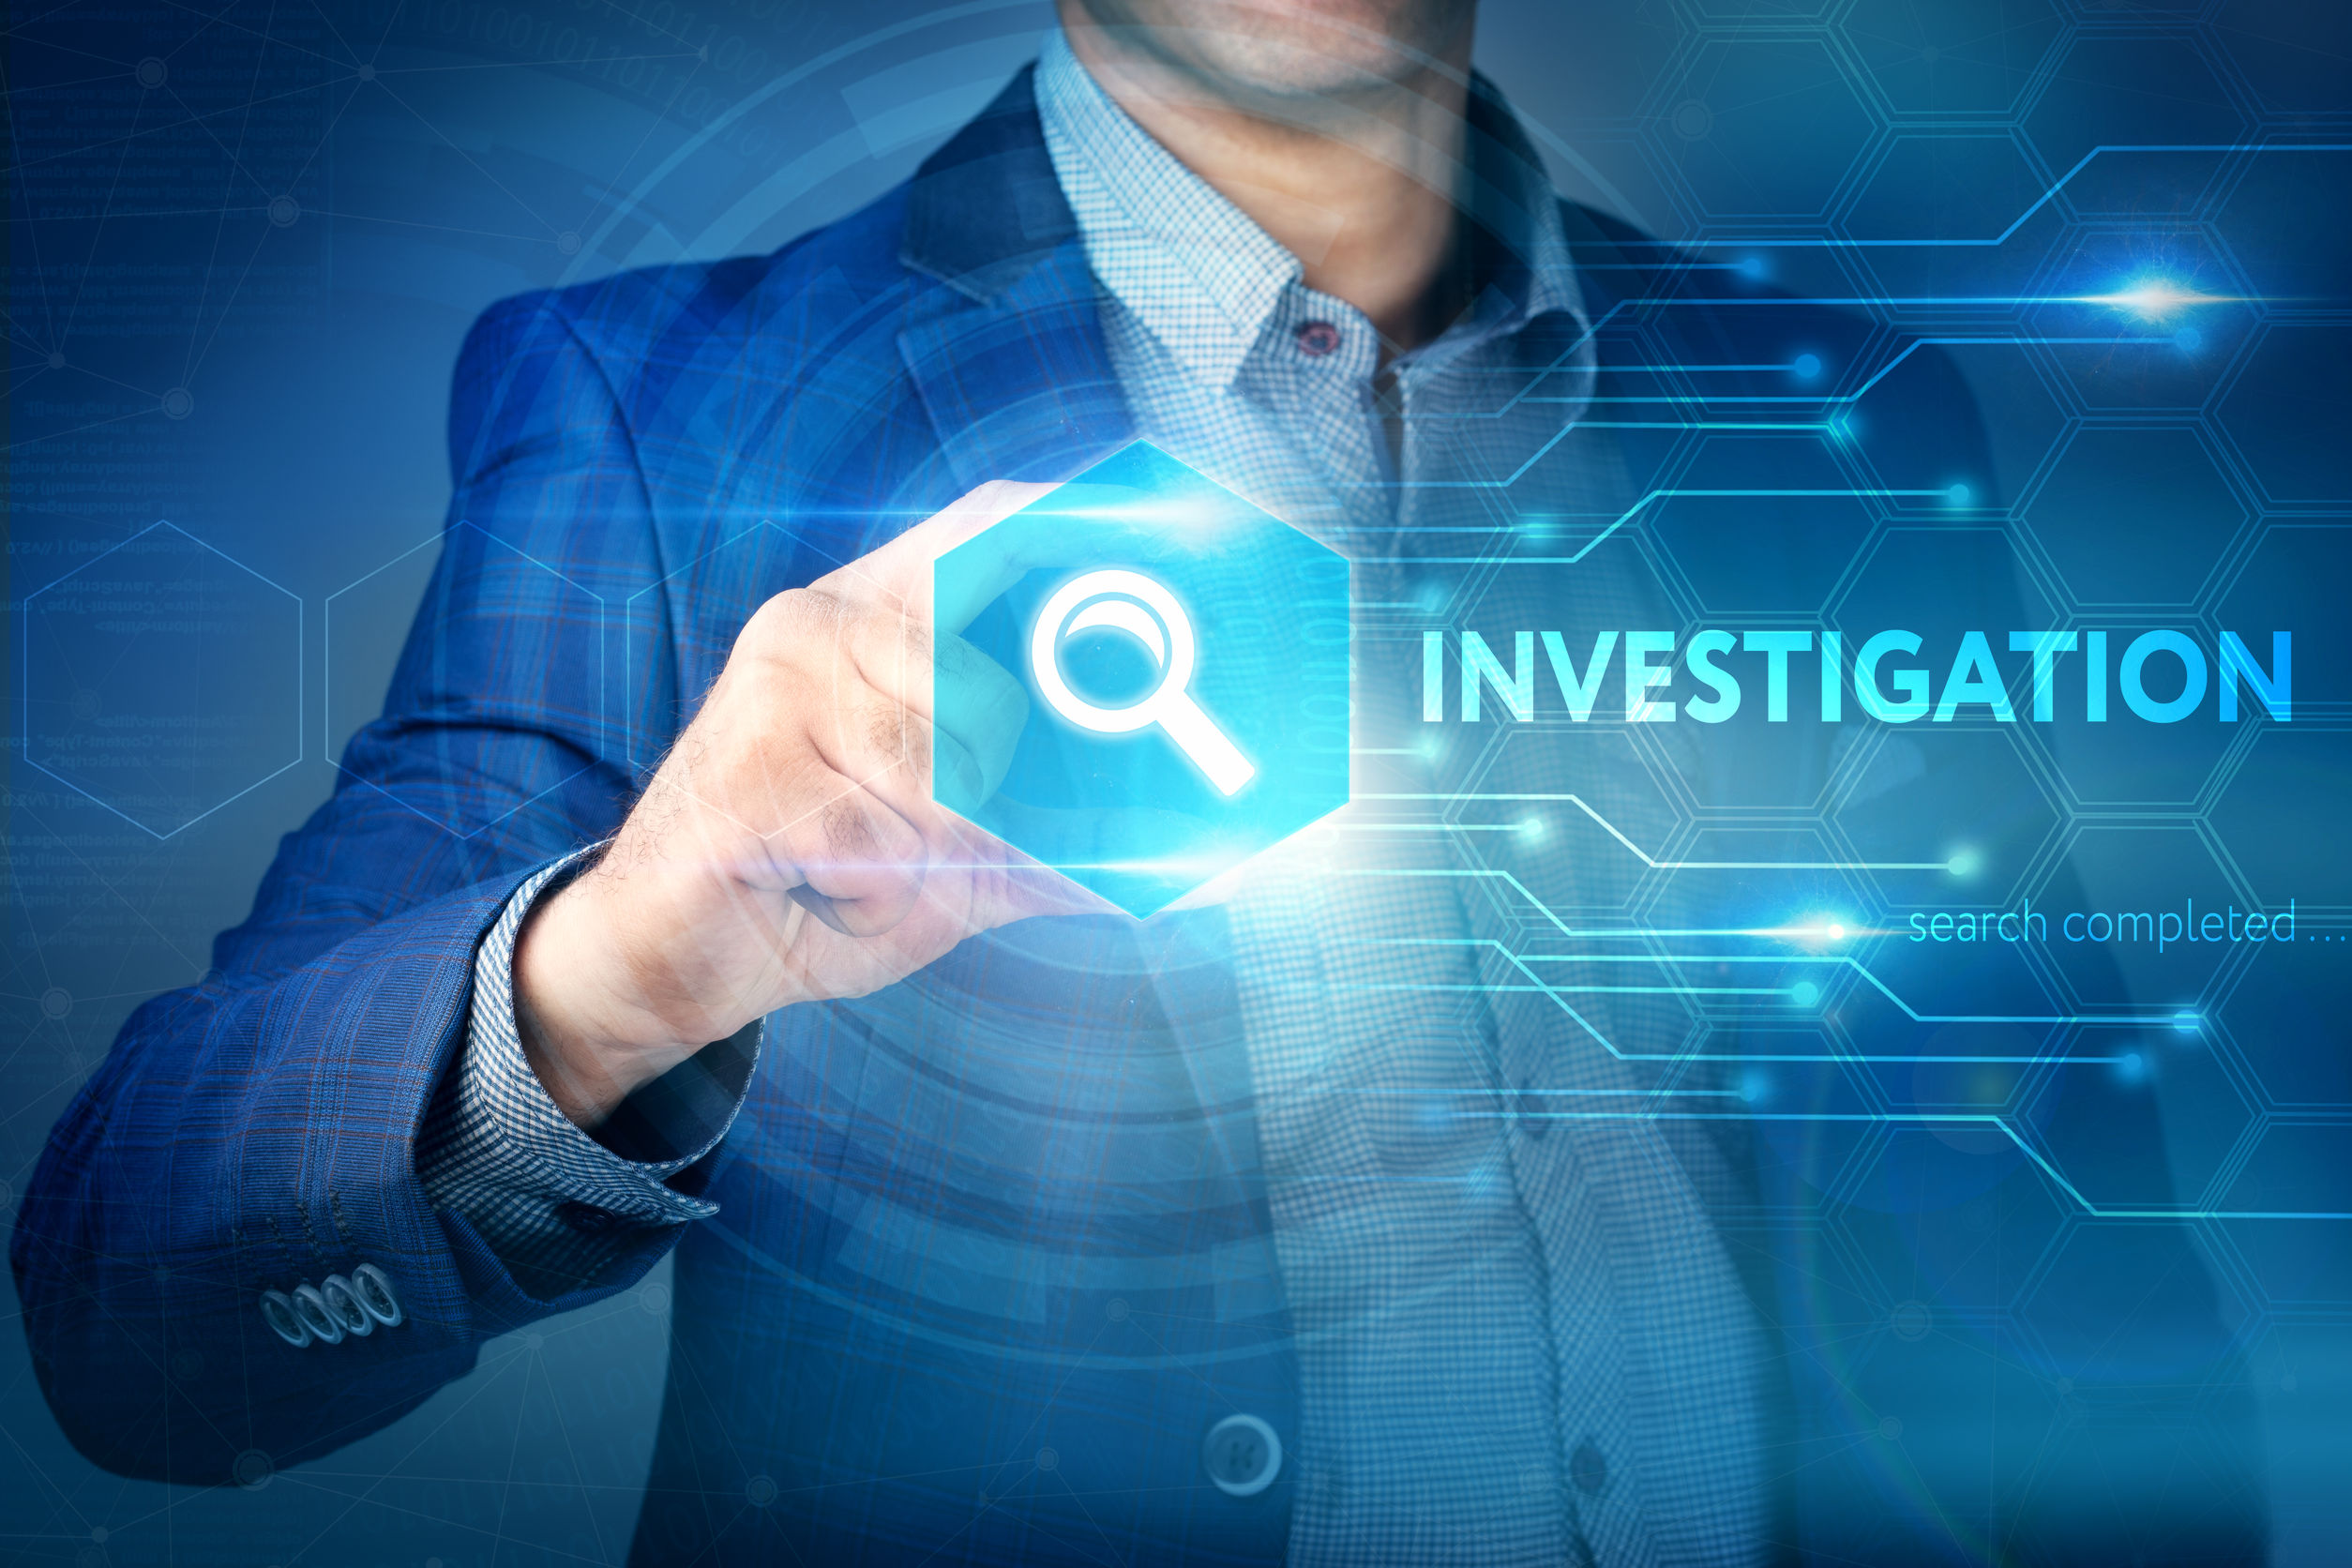 Business, internet, technology concept. Businessman chooses Investigation button on a touch screen interface.